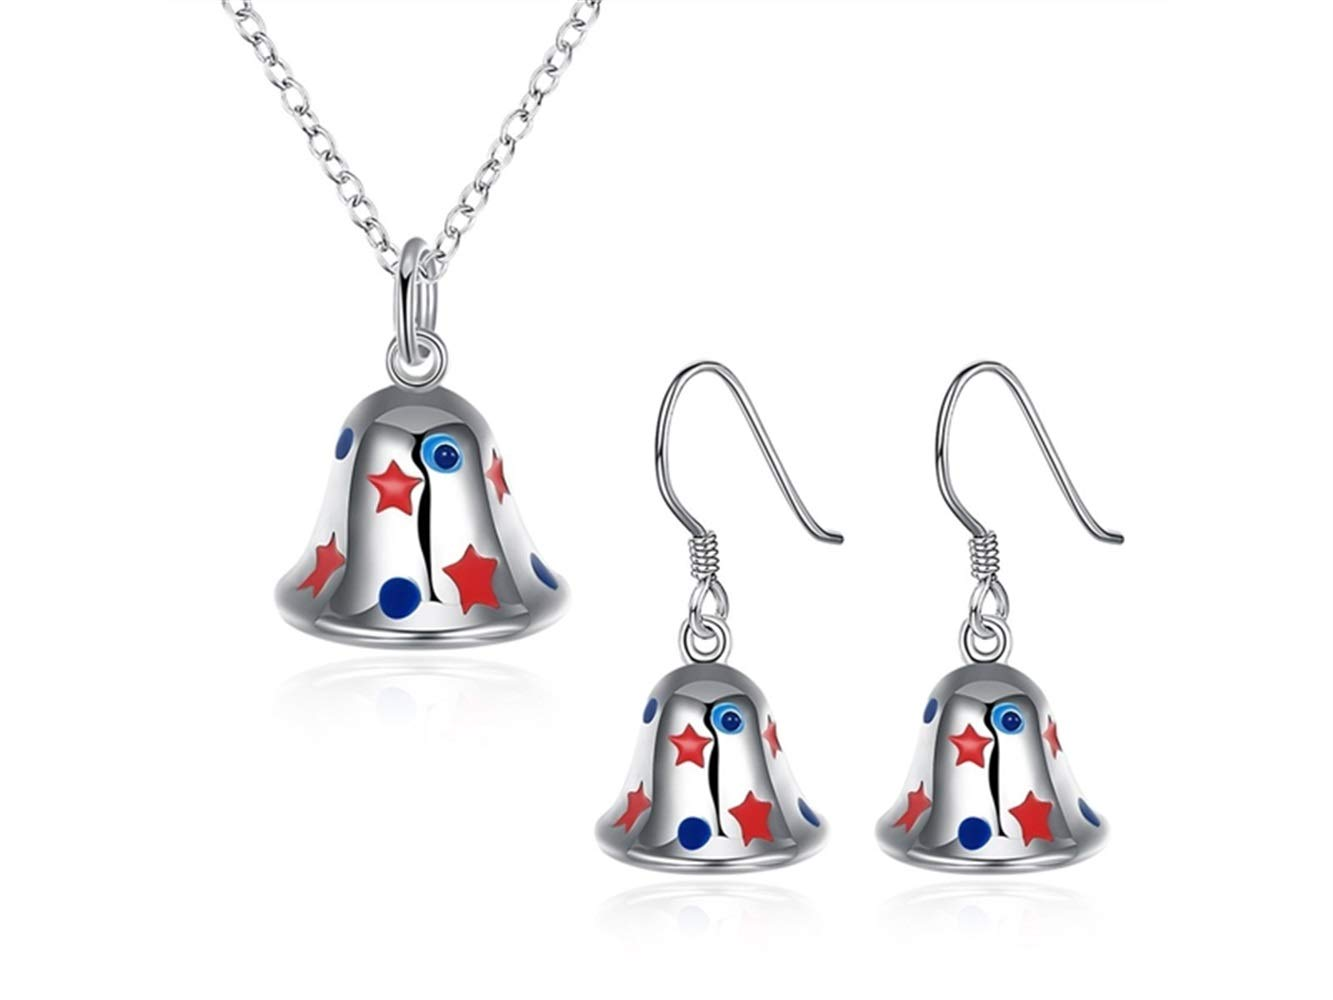 Yuchoi Girl Jewelry Bell Pendant Necklace Earrings Set Christmas Jewelry Decoration(Silver) by Yuchoi